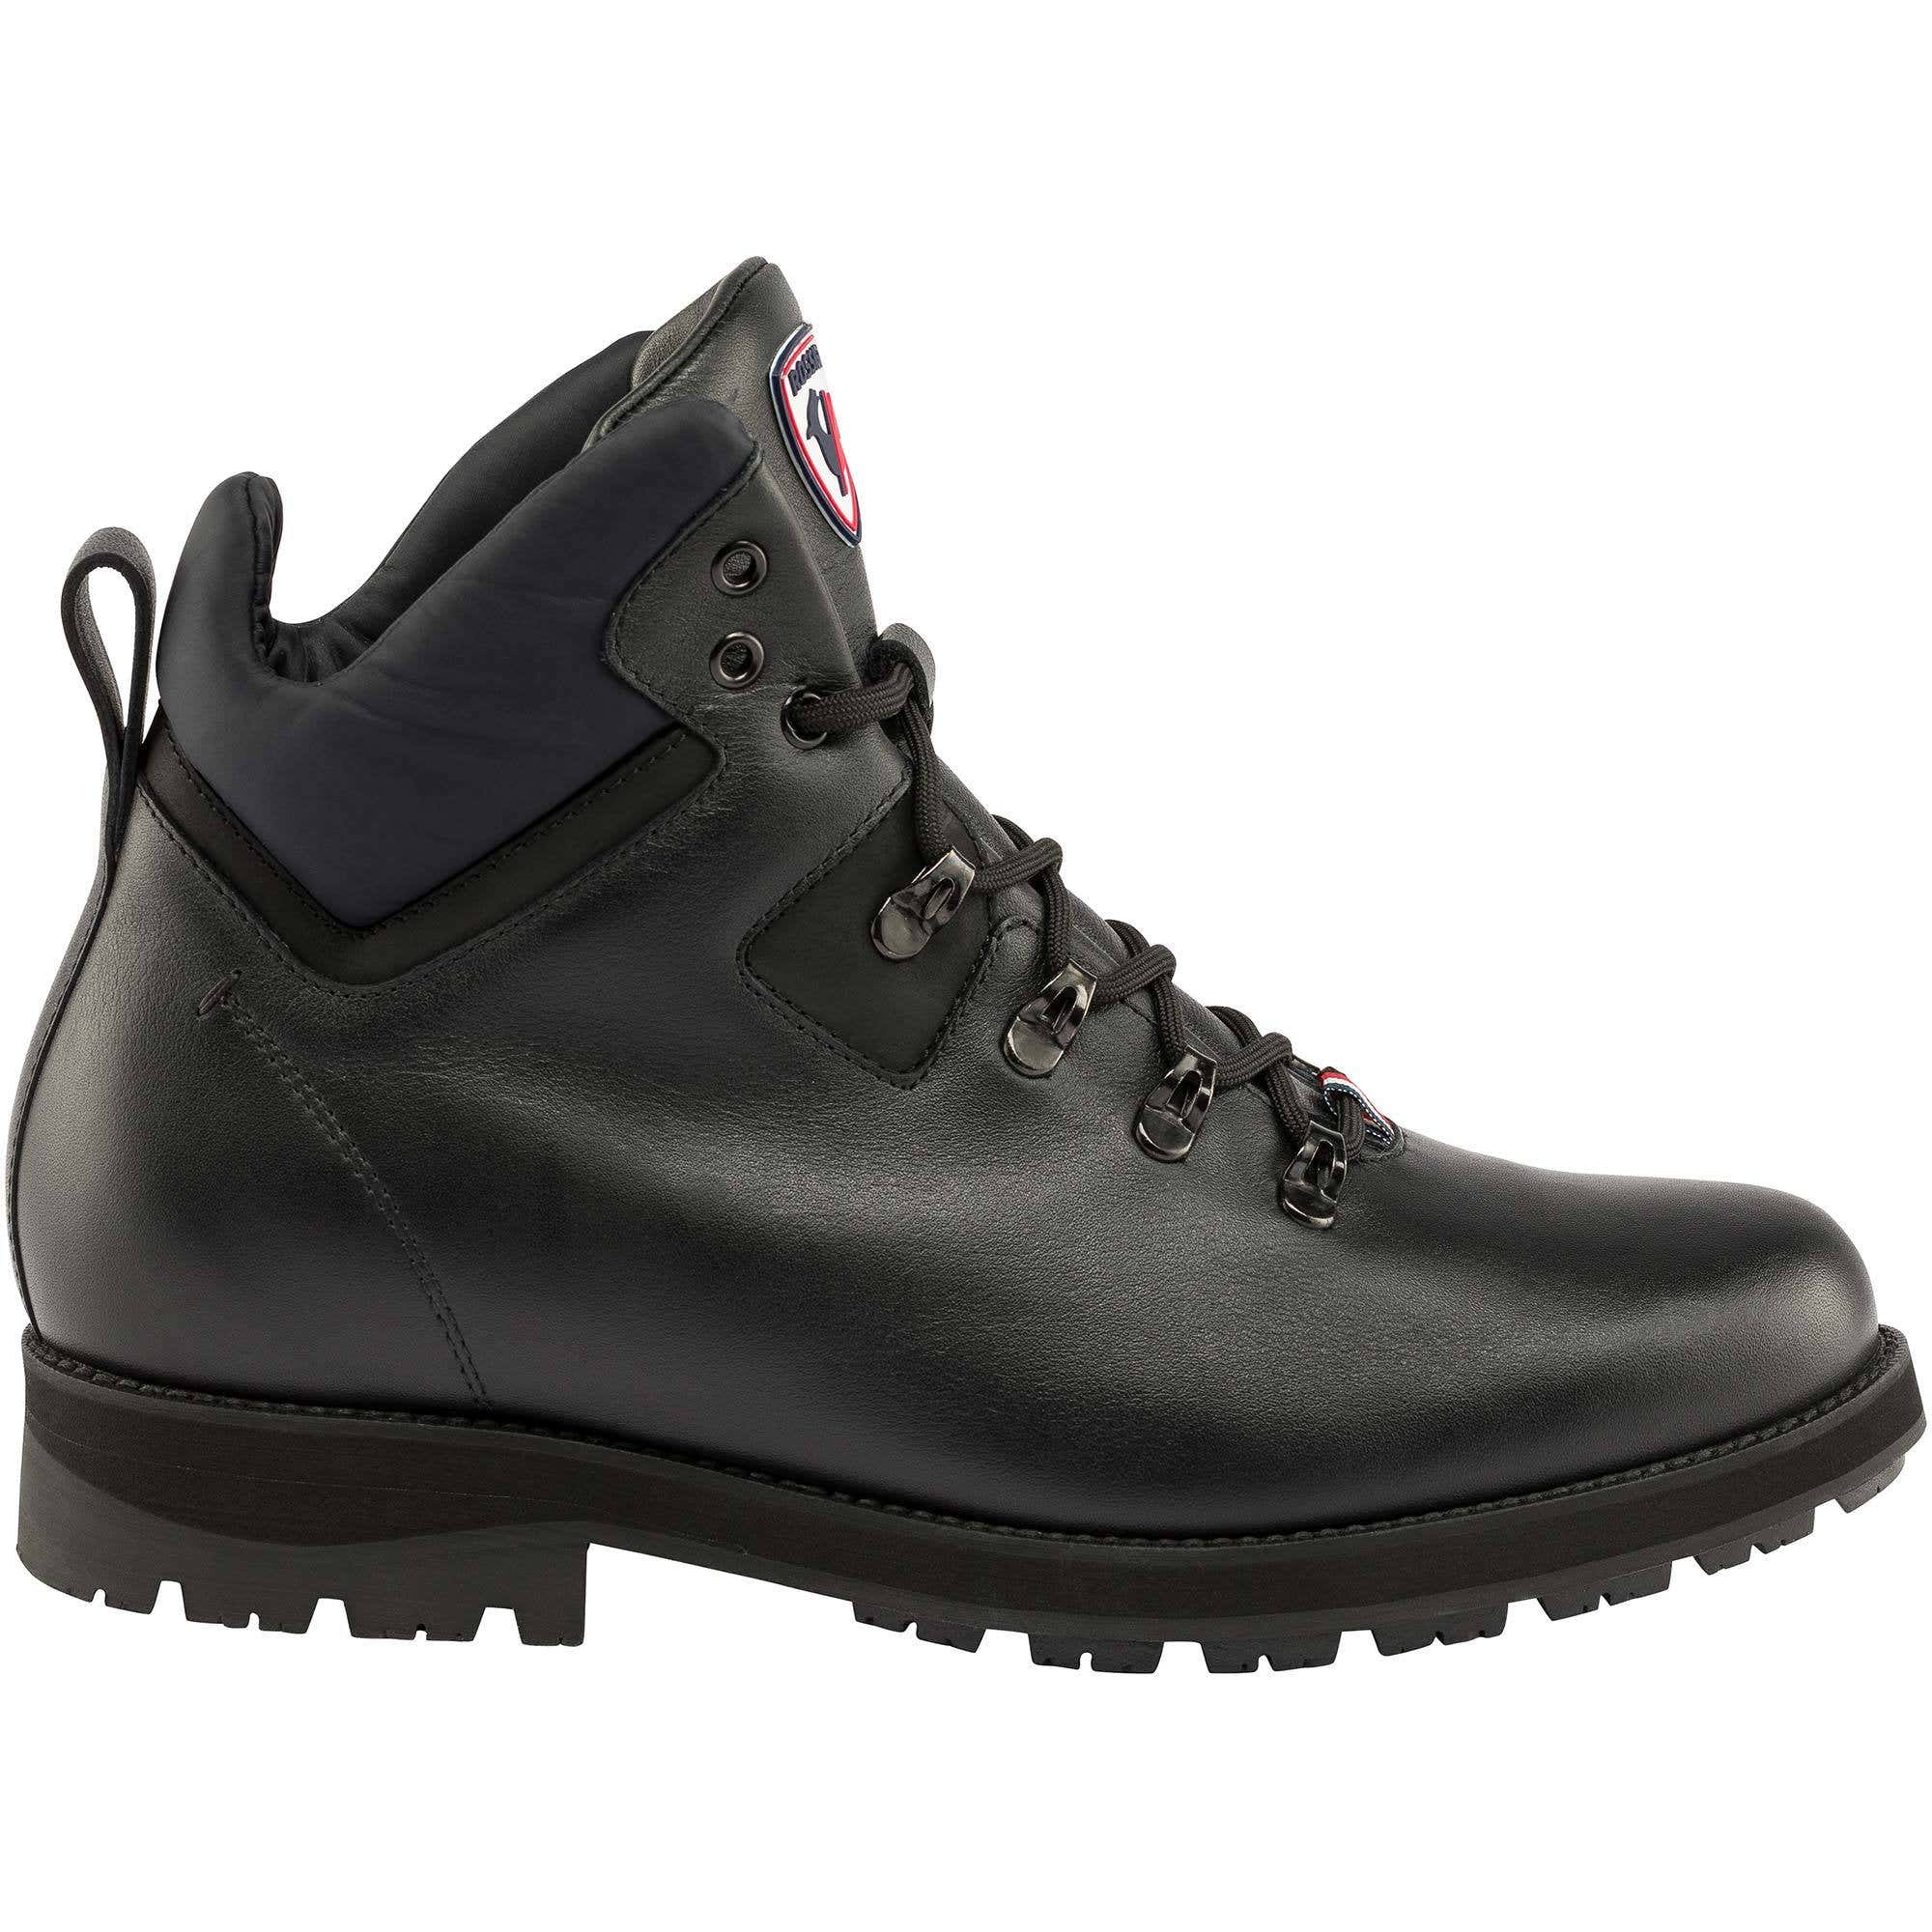 Image of Men's Experience 01 Boots